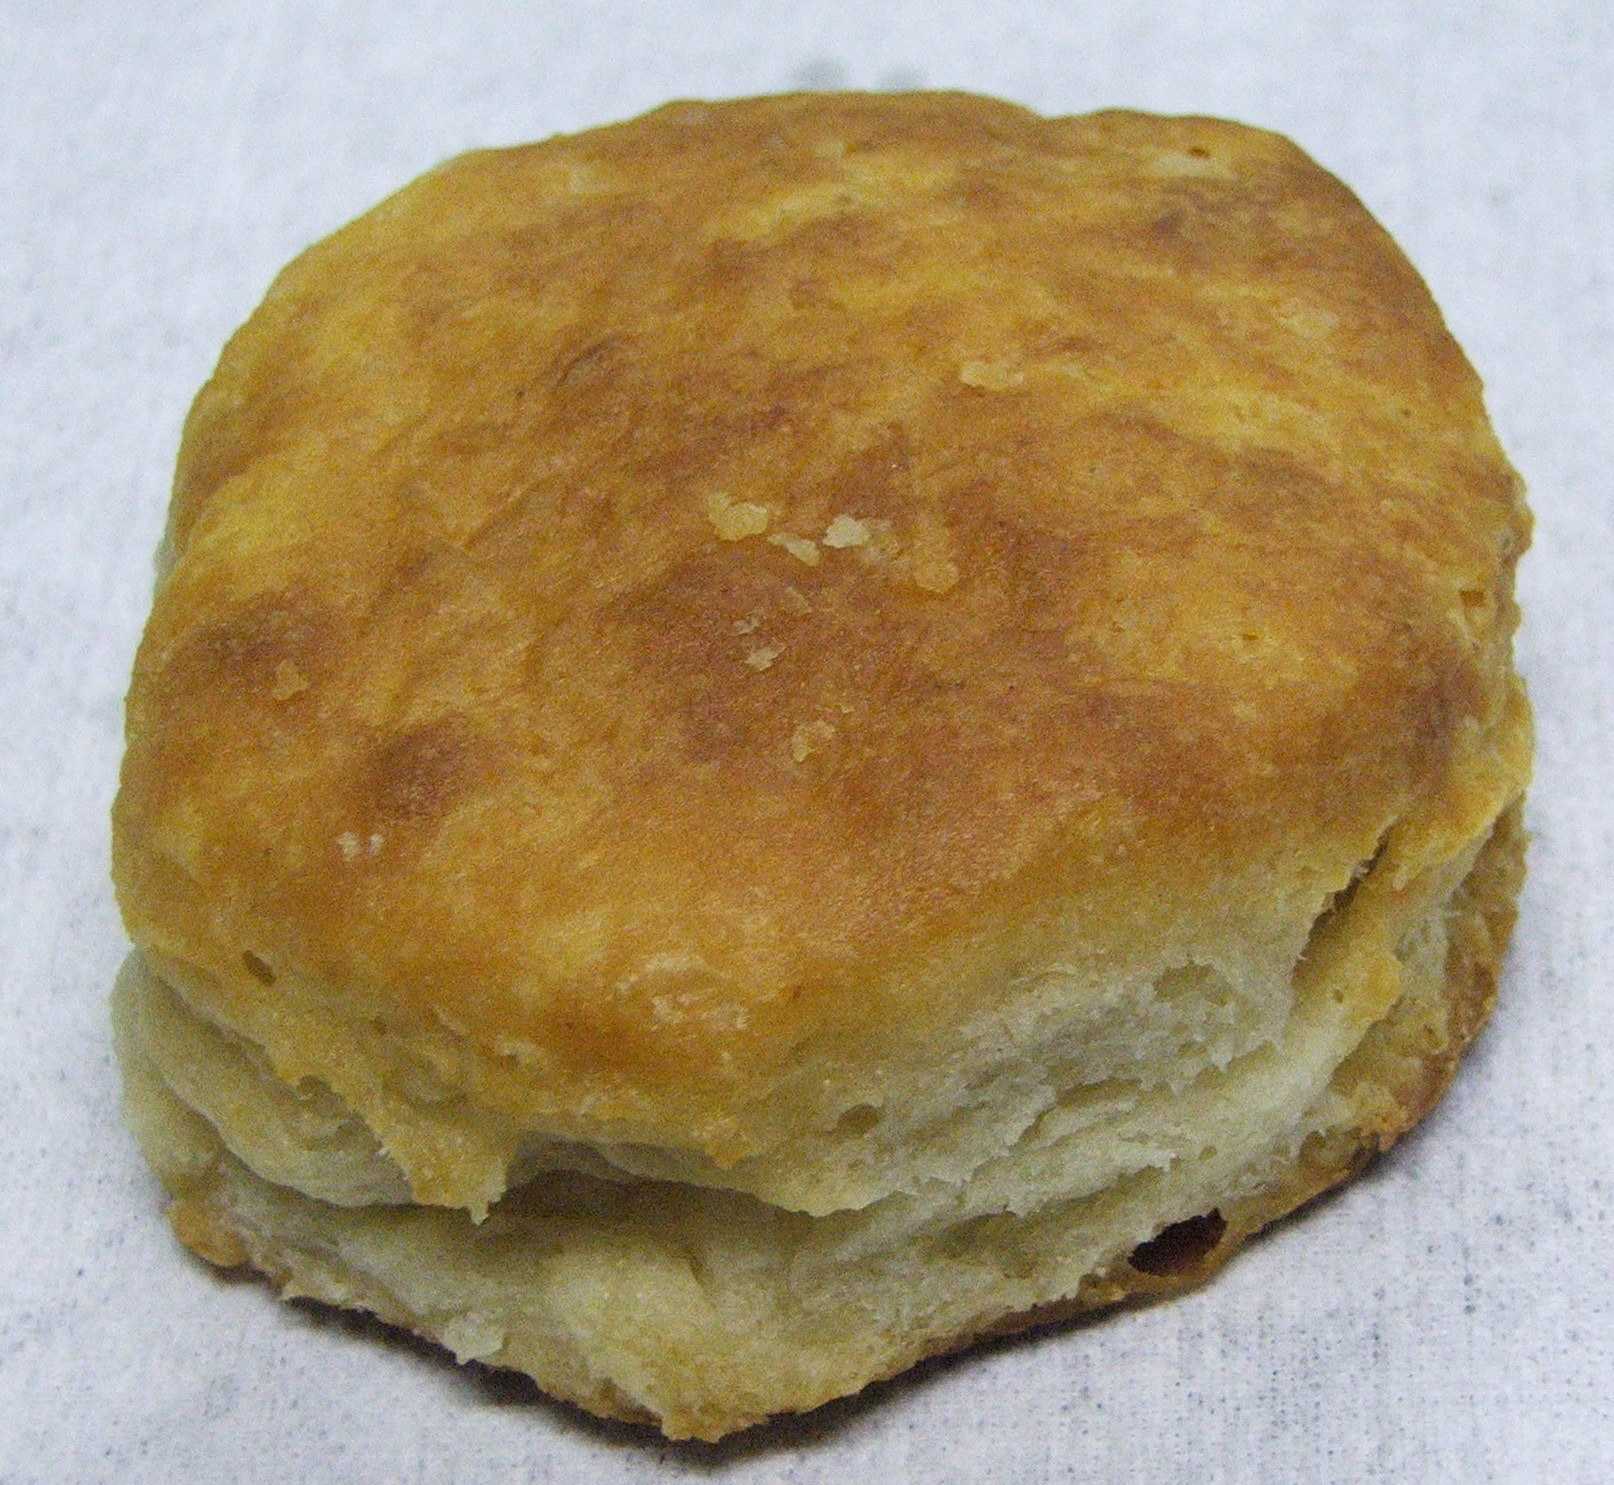 Good Flour Makes Good Biscuits